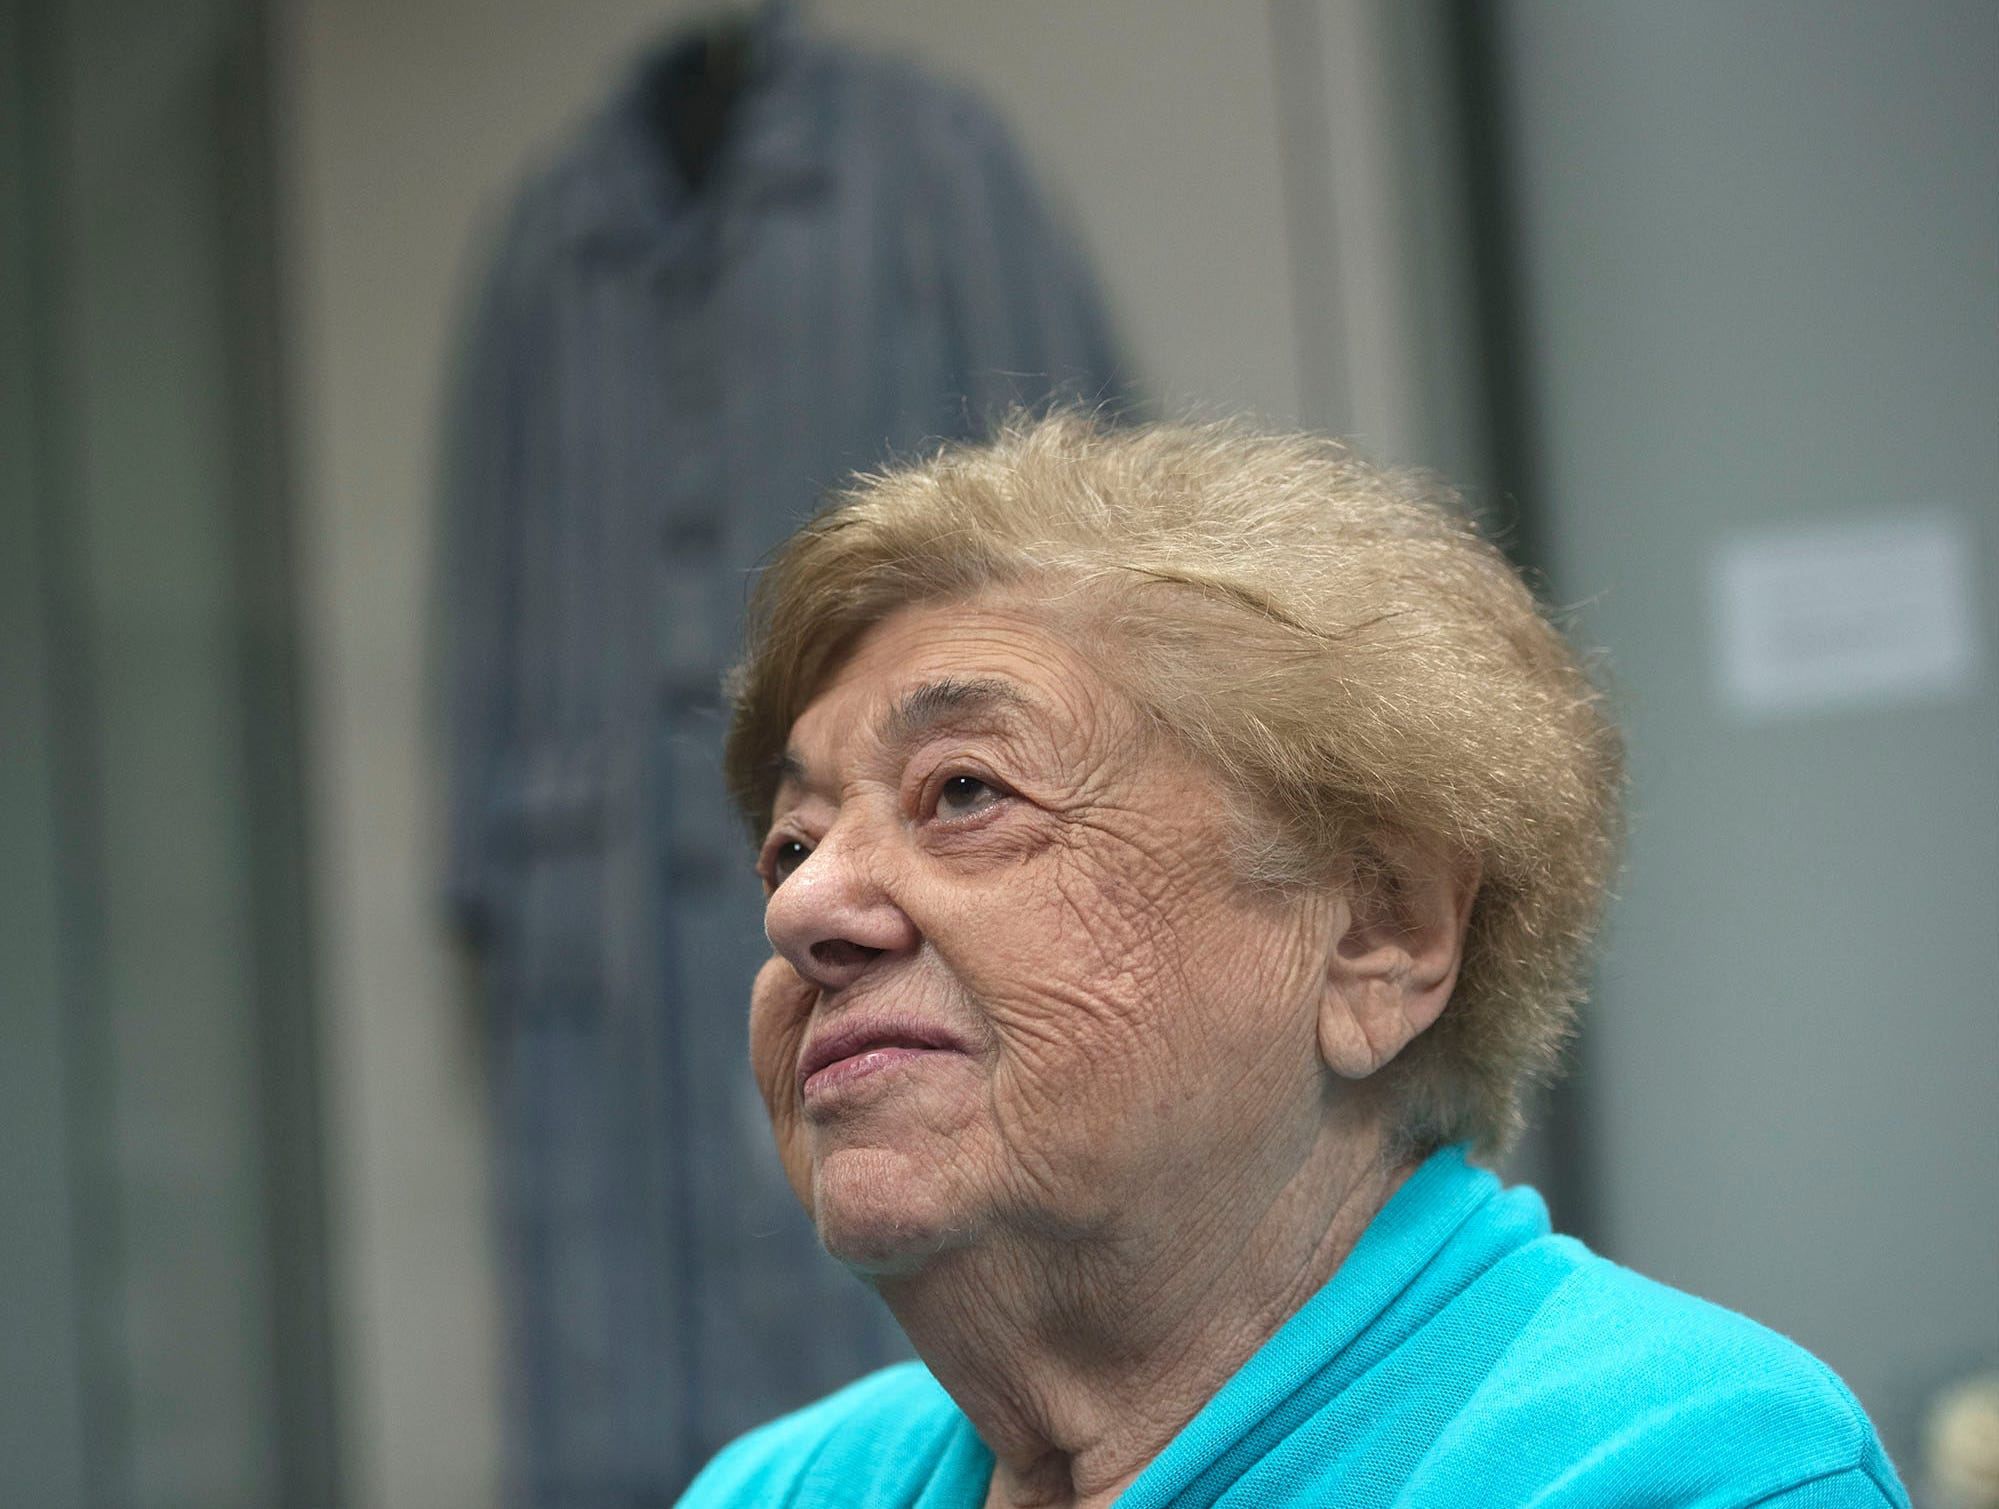 Magda Brown reflects on the time she spent in a concentration camp as a 17-year-old. Brown spoke to reporters Monday, October 29, 2018 at Holocaust Center of Pittsburgh.  A gunman entered the Tree of Life Congregation Synagogue in the Squirrel Hill neighborhood of Pittsburgh, Pa., and opened fire on the congregants and engaged police, Saturday morning, according to officials. (Markell DeLoatch, Public Opinion/via USA Today Network)